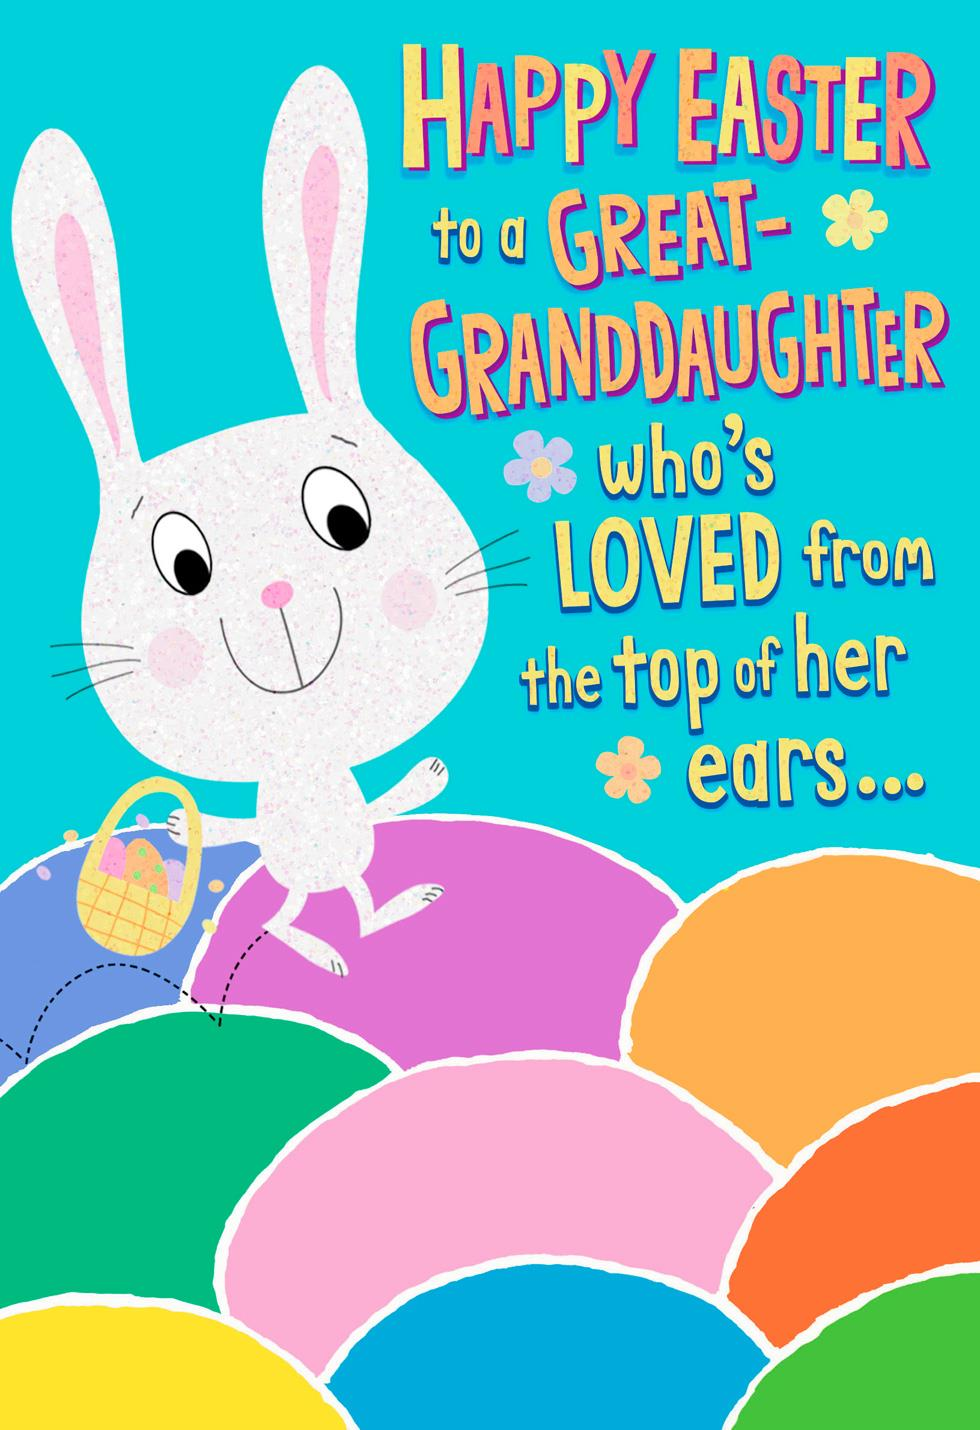 Easter cards gifts ornaments hallmark great granddaughter colorful eggs easter card negle Choice Image